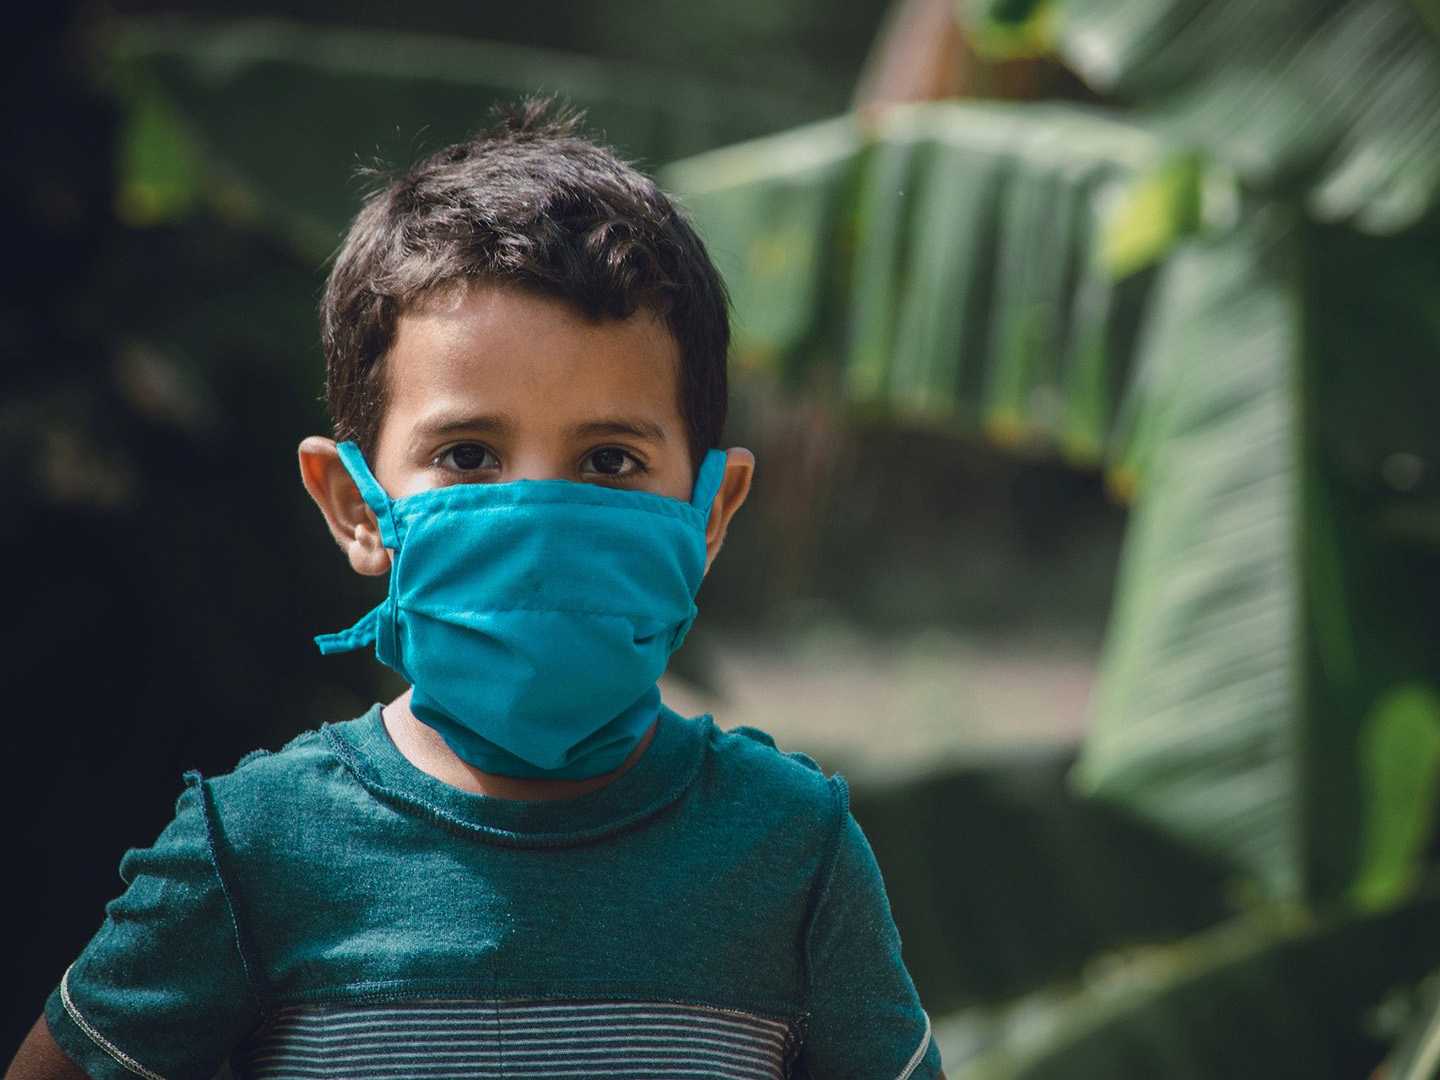 Boy in blue mask and green shirt in front of tropical leaves